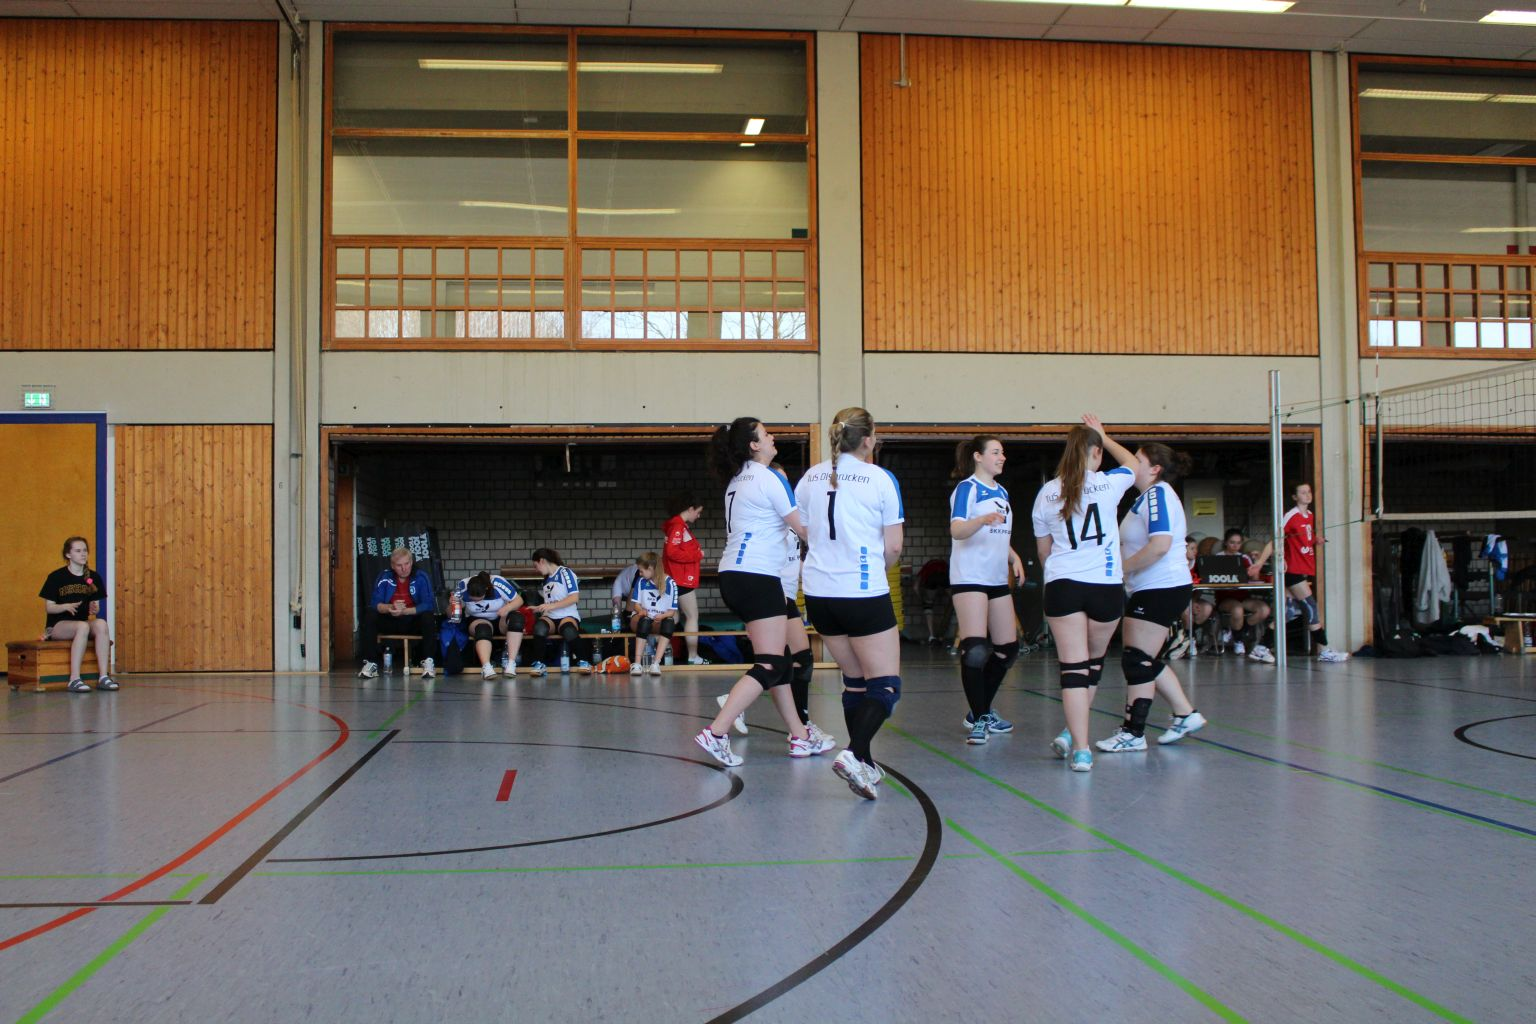 170325_Volleyball_IMG_4164